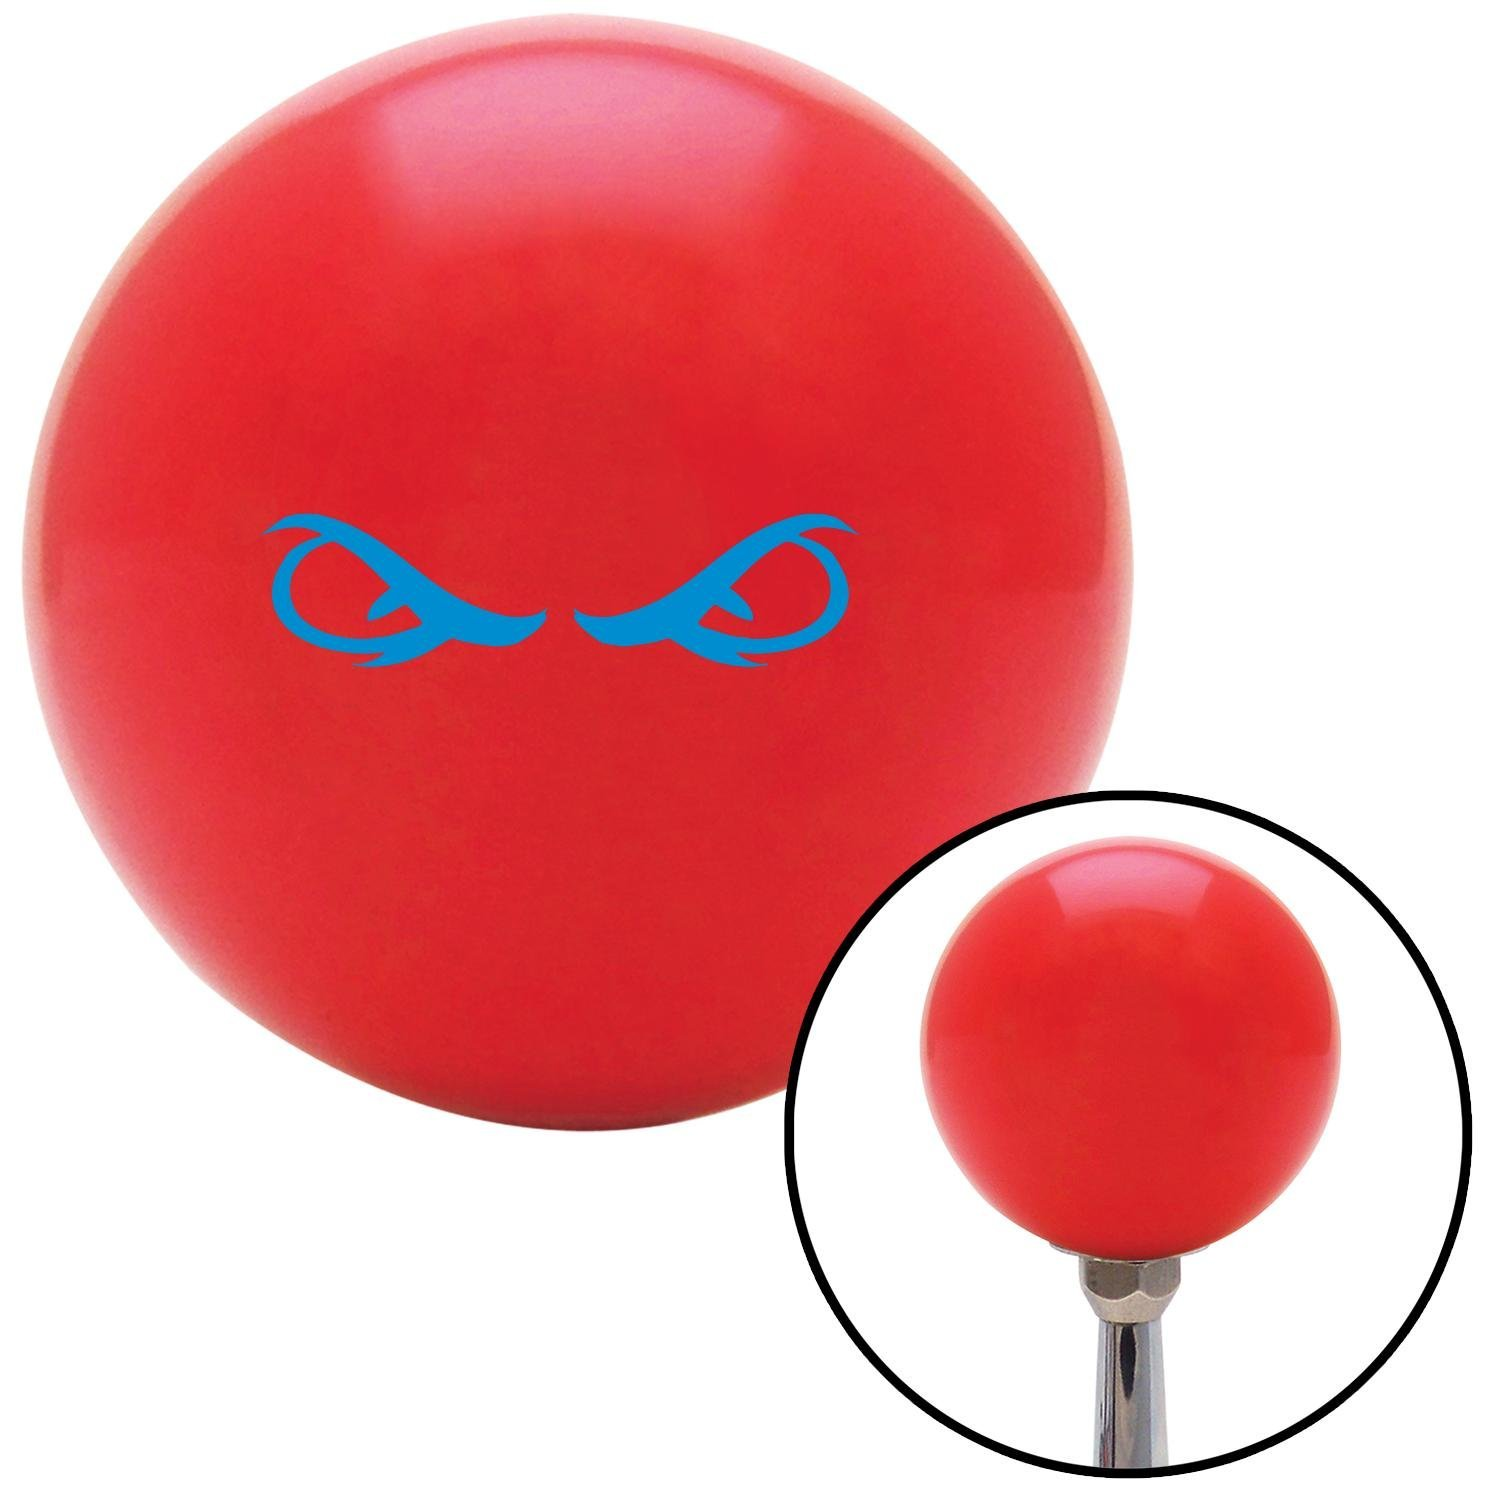 American Shifter 94989 Red Shift Knob with M16 x 1.5 Insert Blue Creepy Eyes